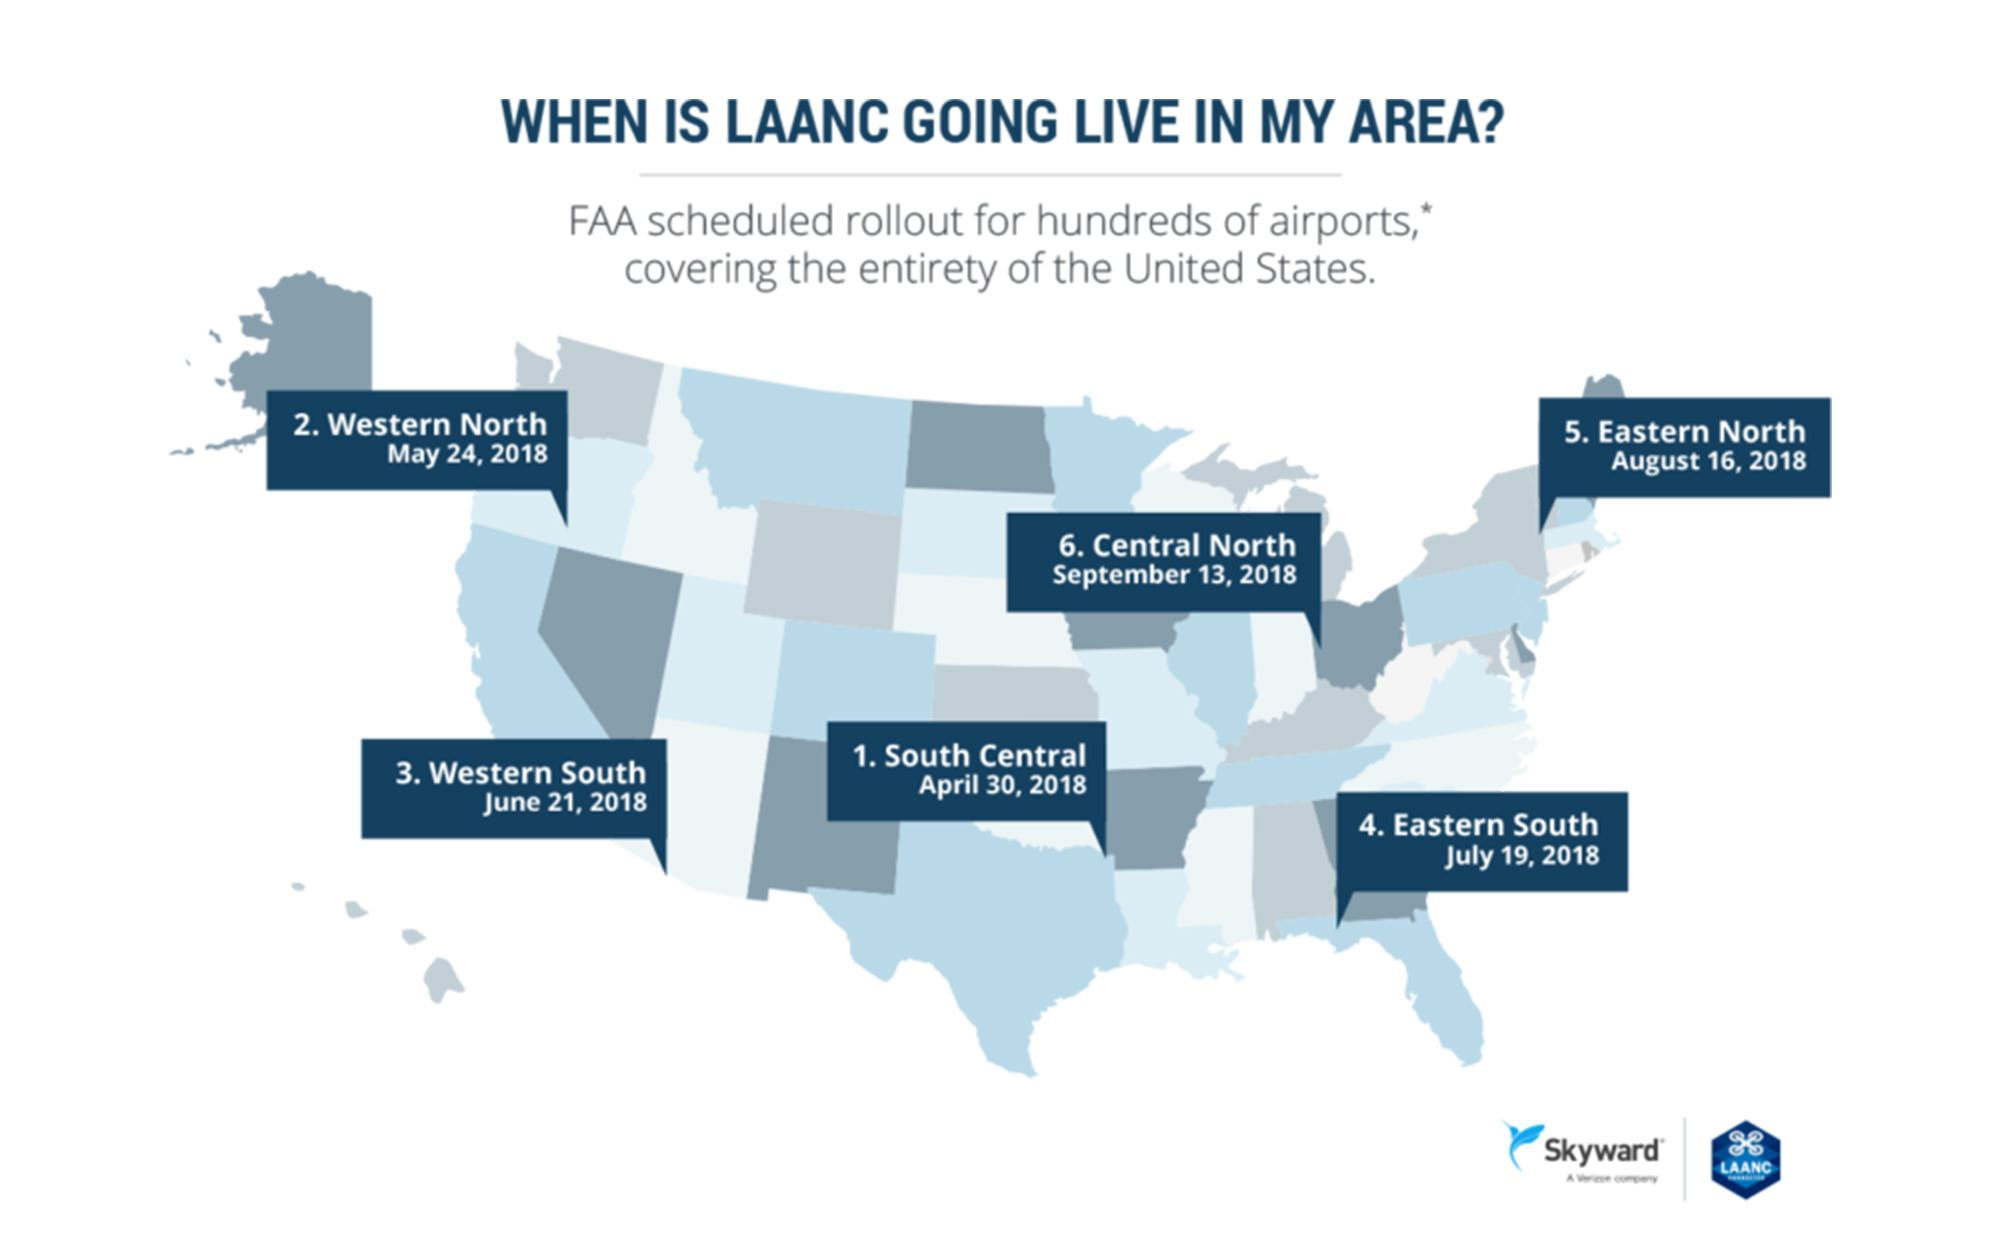 faa-begins-laanc-program